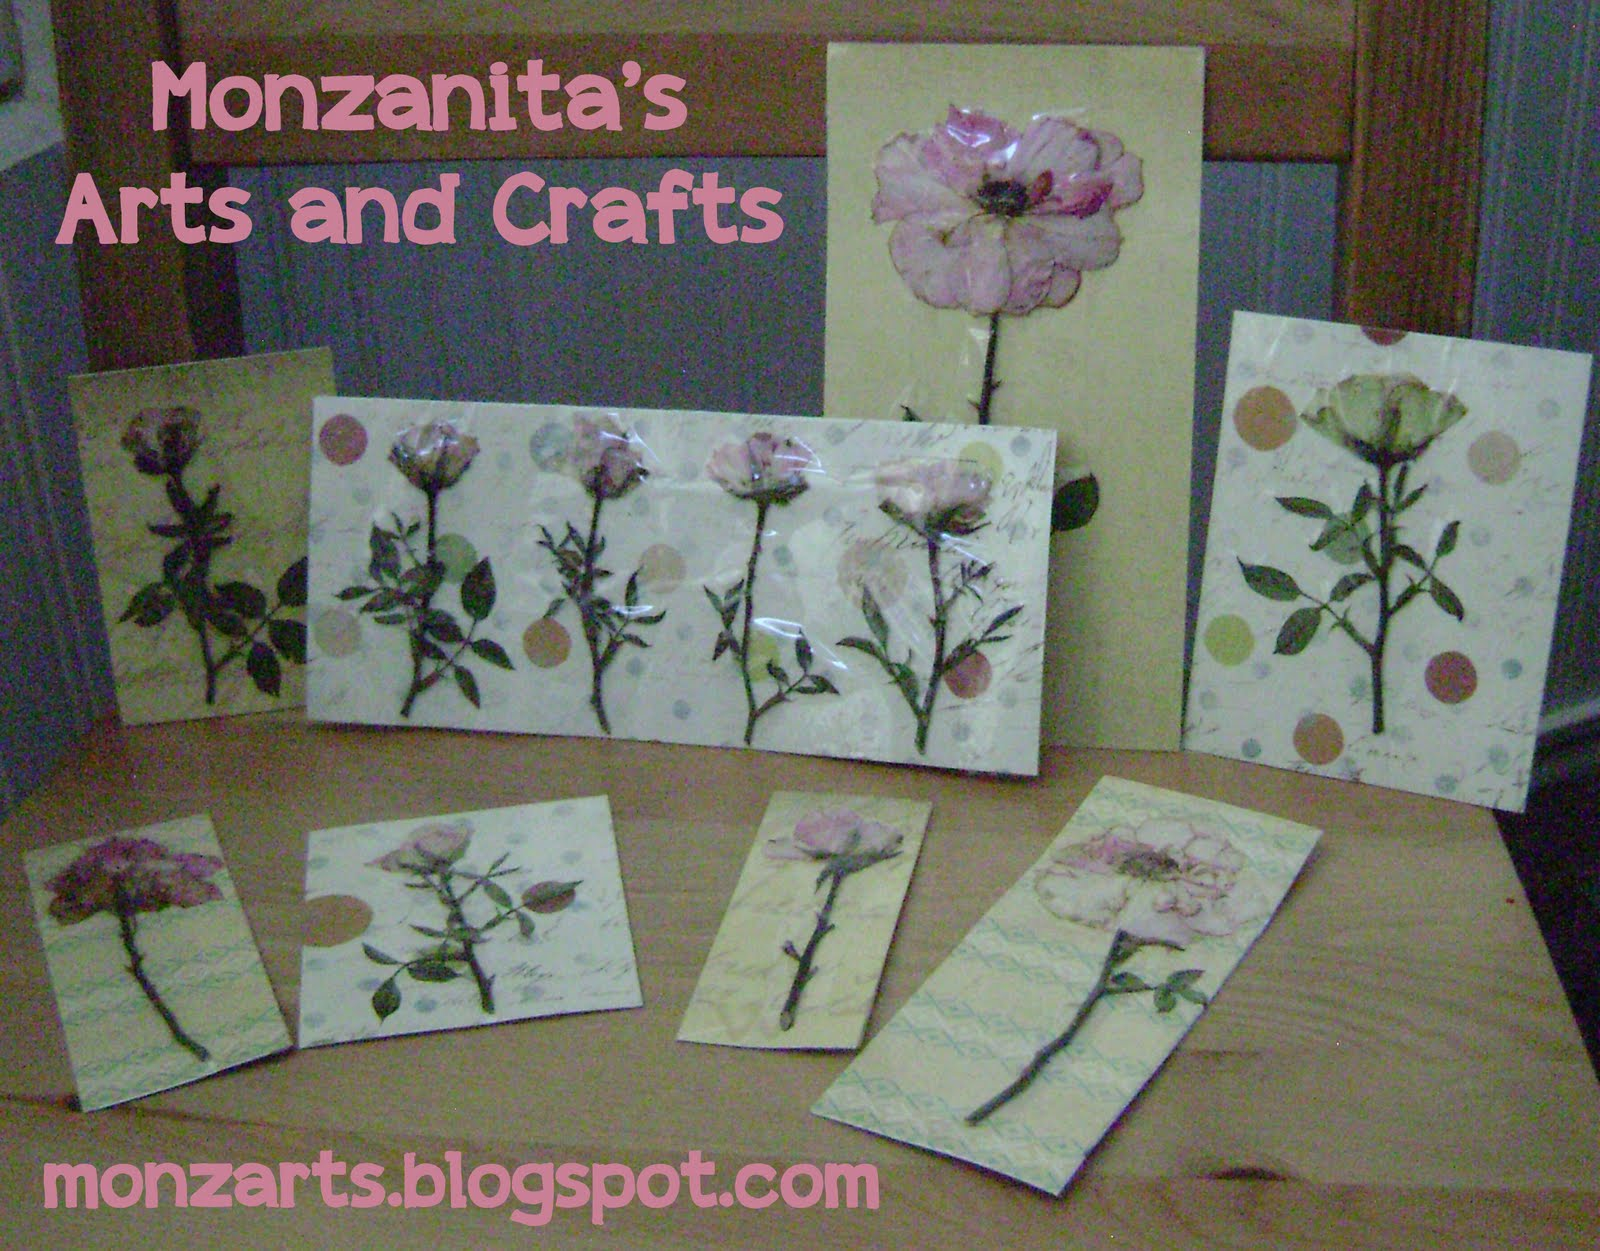 How to scrapbook pressed flowers - I Went The Cheap And Easy Route But If You Wanted To Do This For Scrapbooking You Would Need To Find An Acid Free Tape Or Laminate Sheets